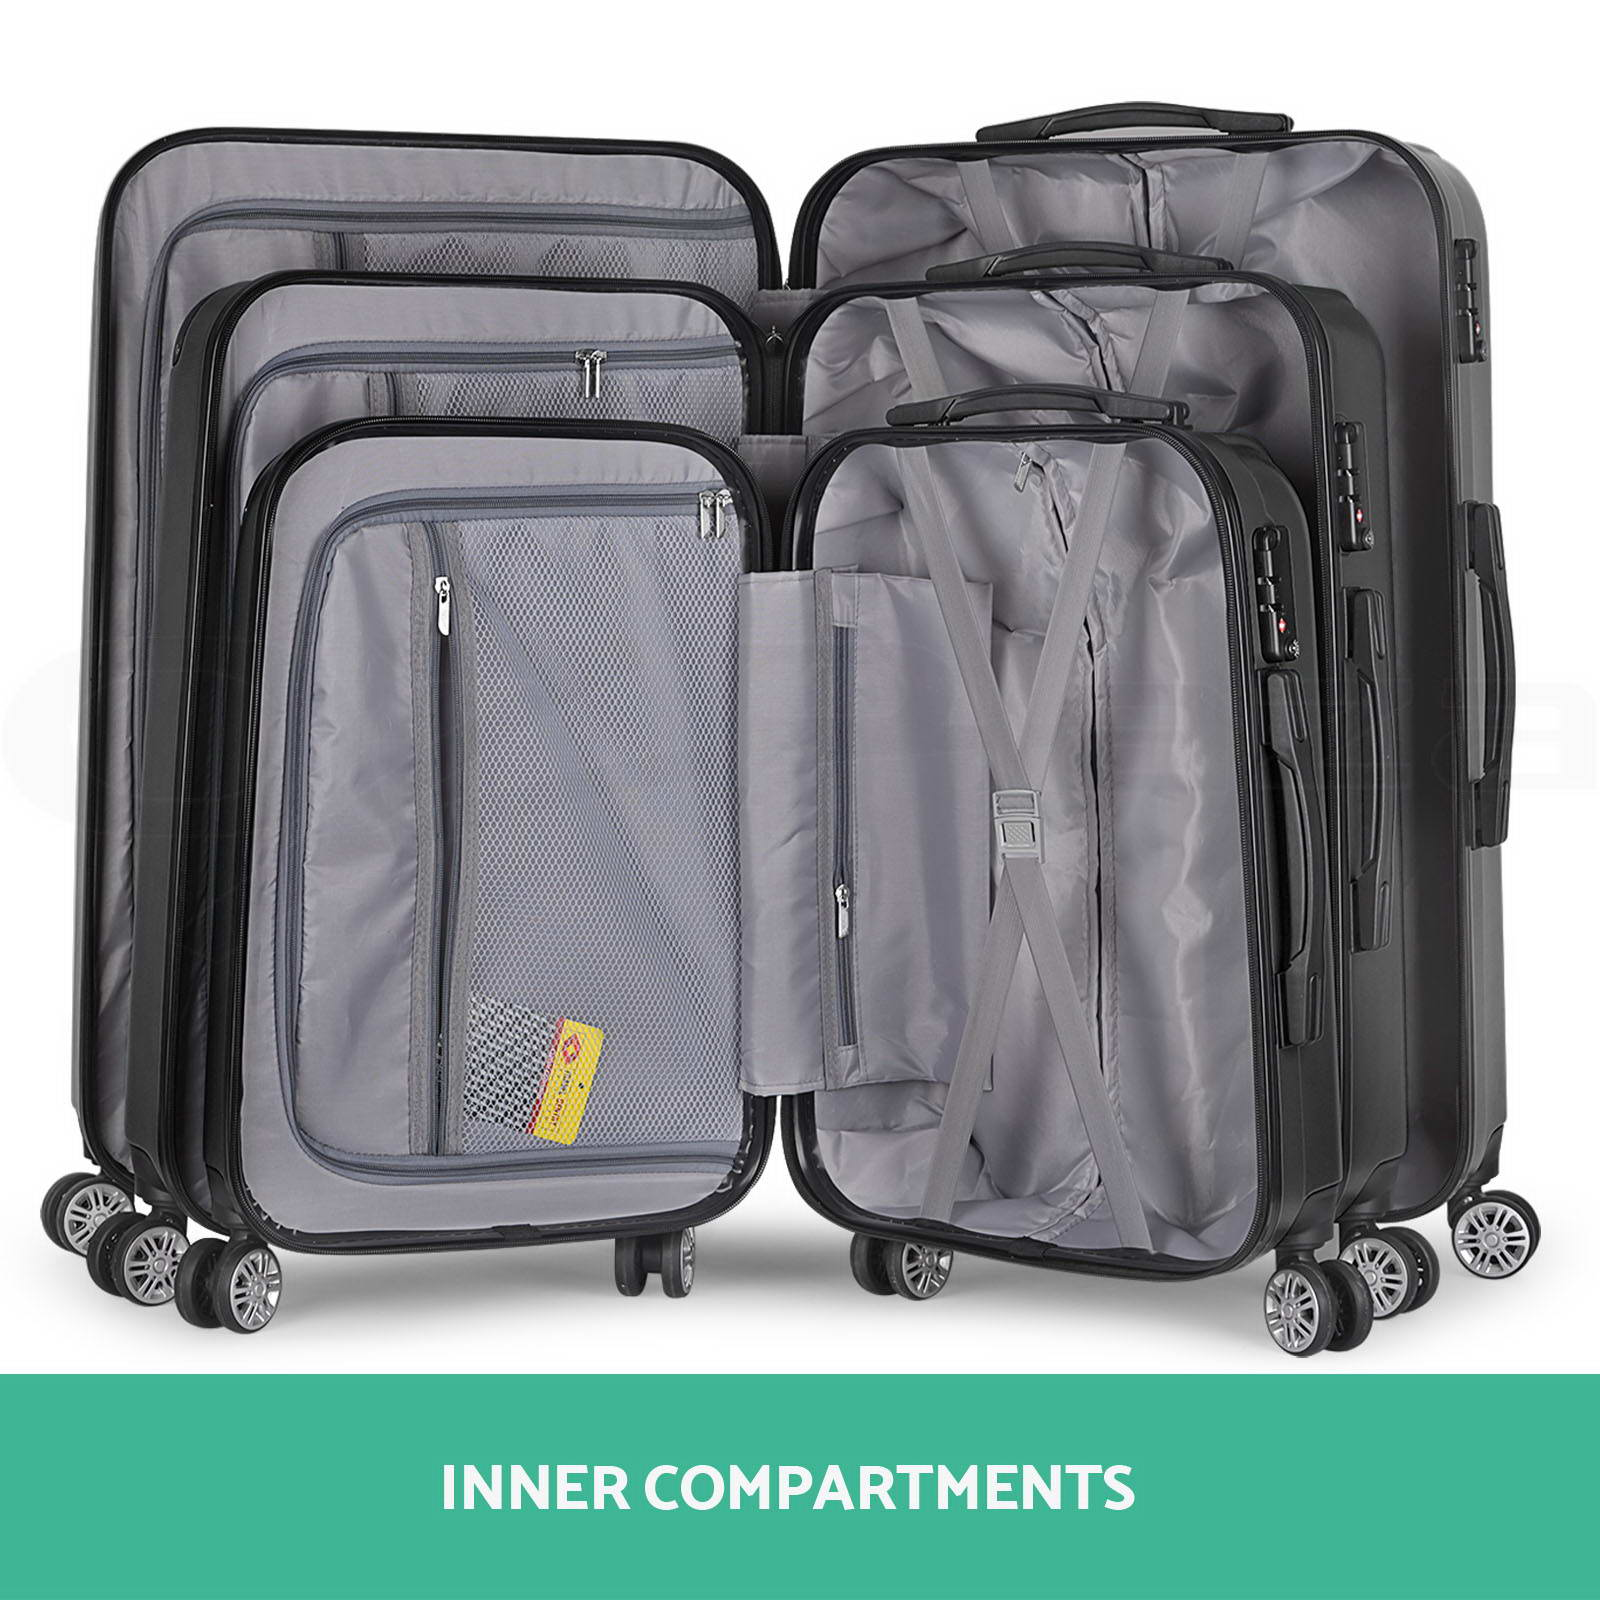 3pc Luggage Suitcase Trolley Set TSA Travel Carry On Bag Hard Case Lightweight 4